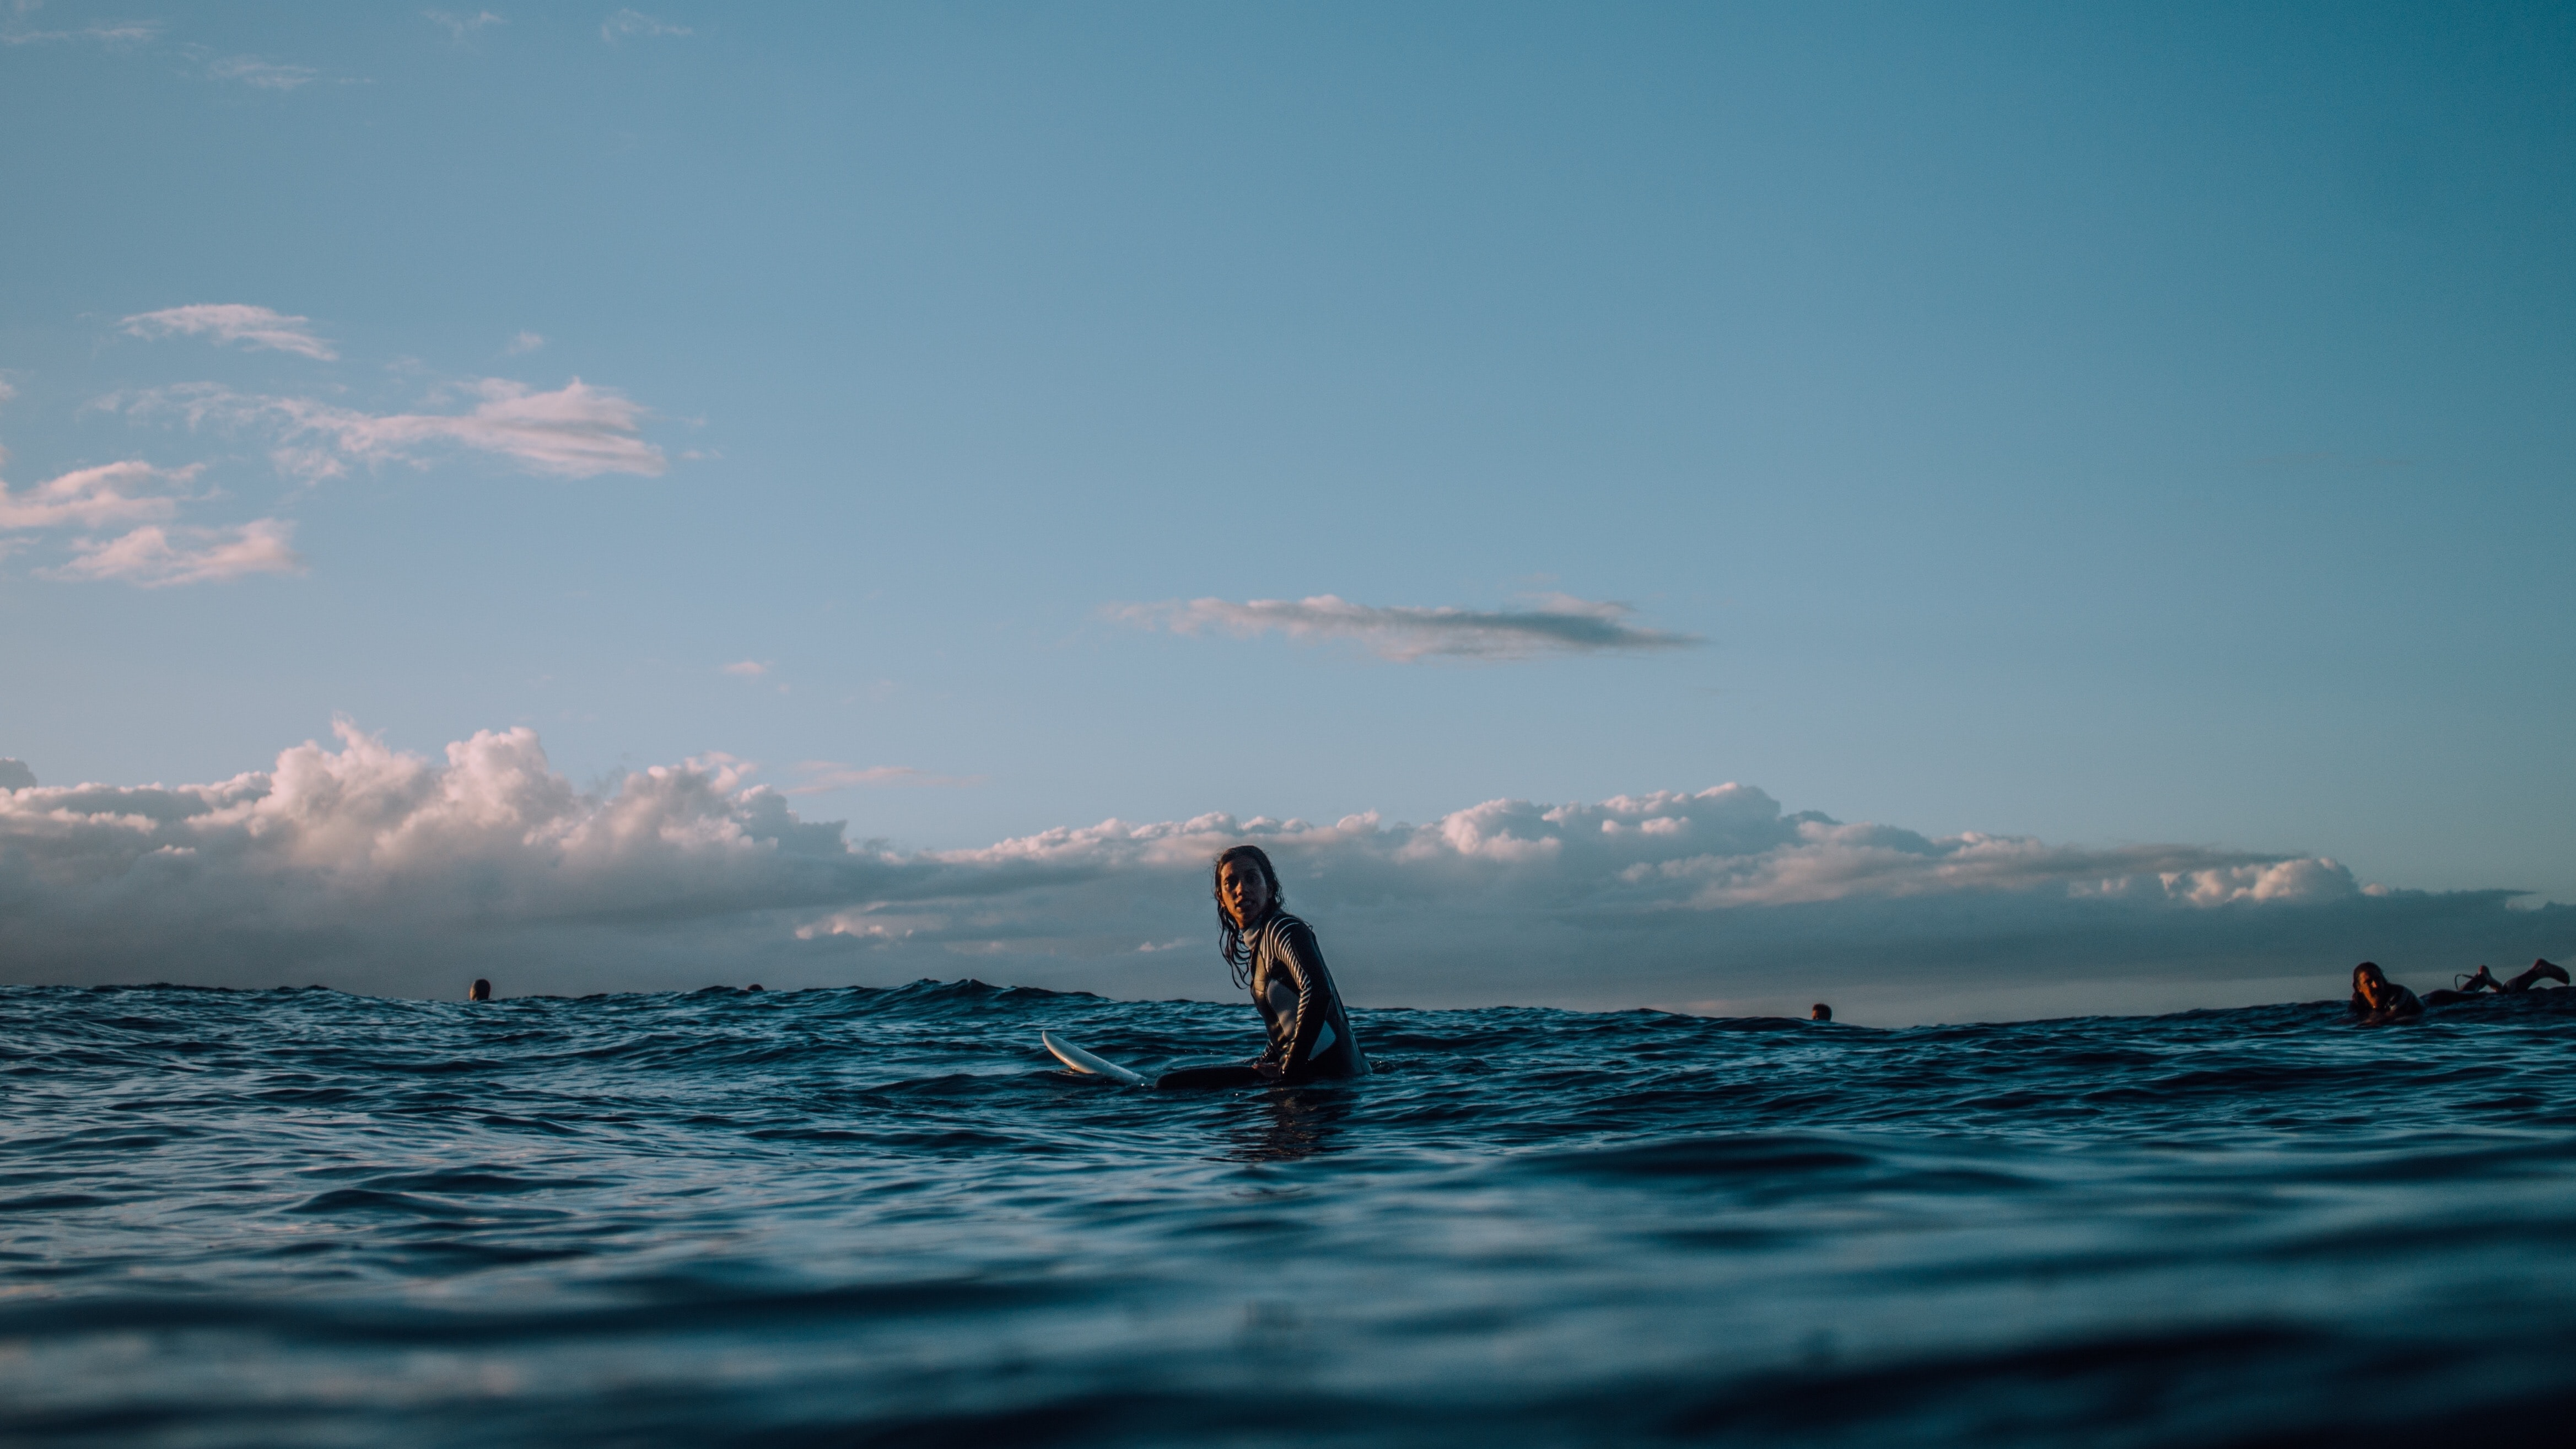 person sitting on surfboard surrounded by blue ocean during daytime